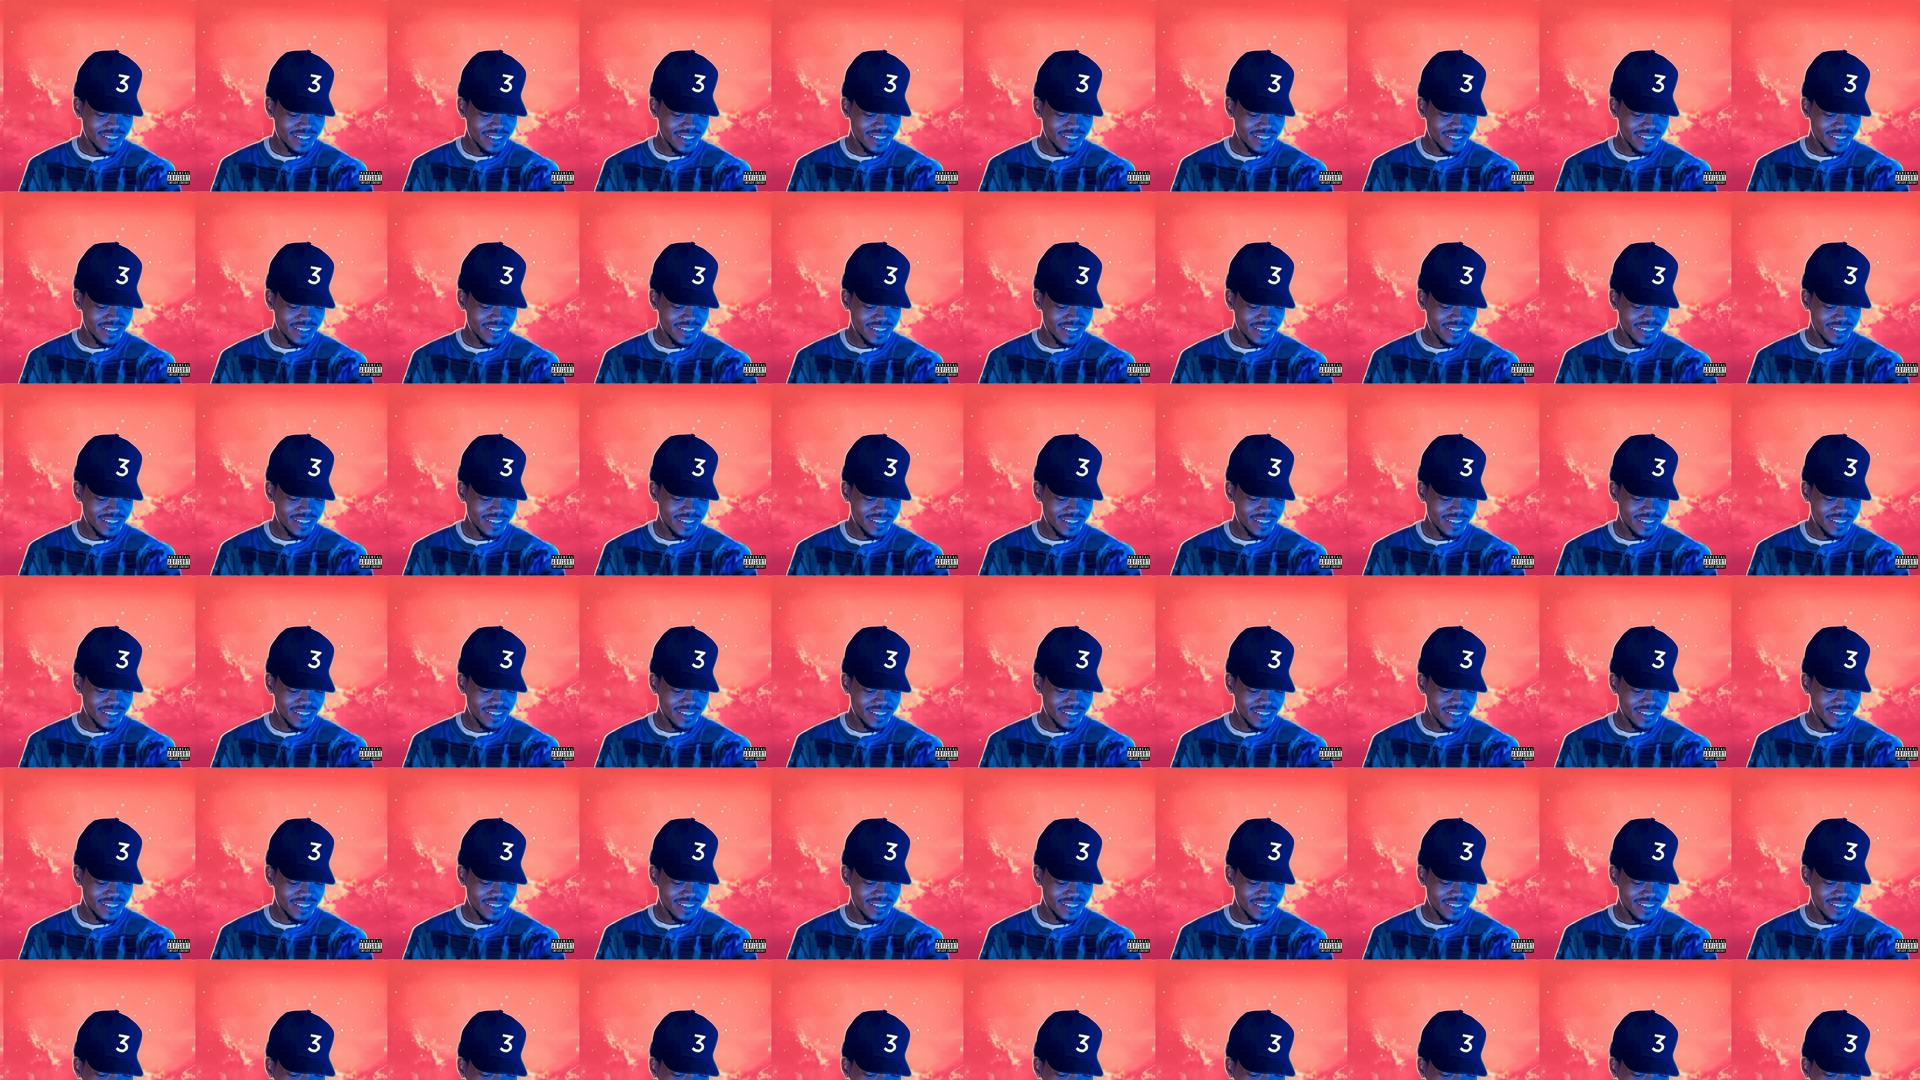 Chance Rapper Coloring Book Wallpaper Tiled Desktop